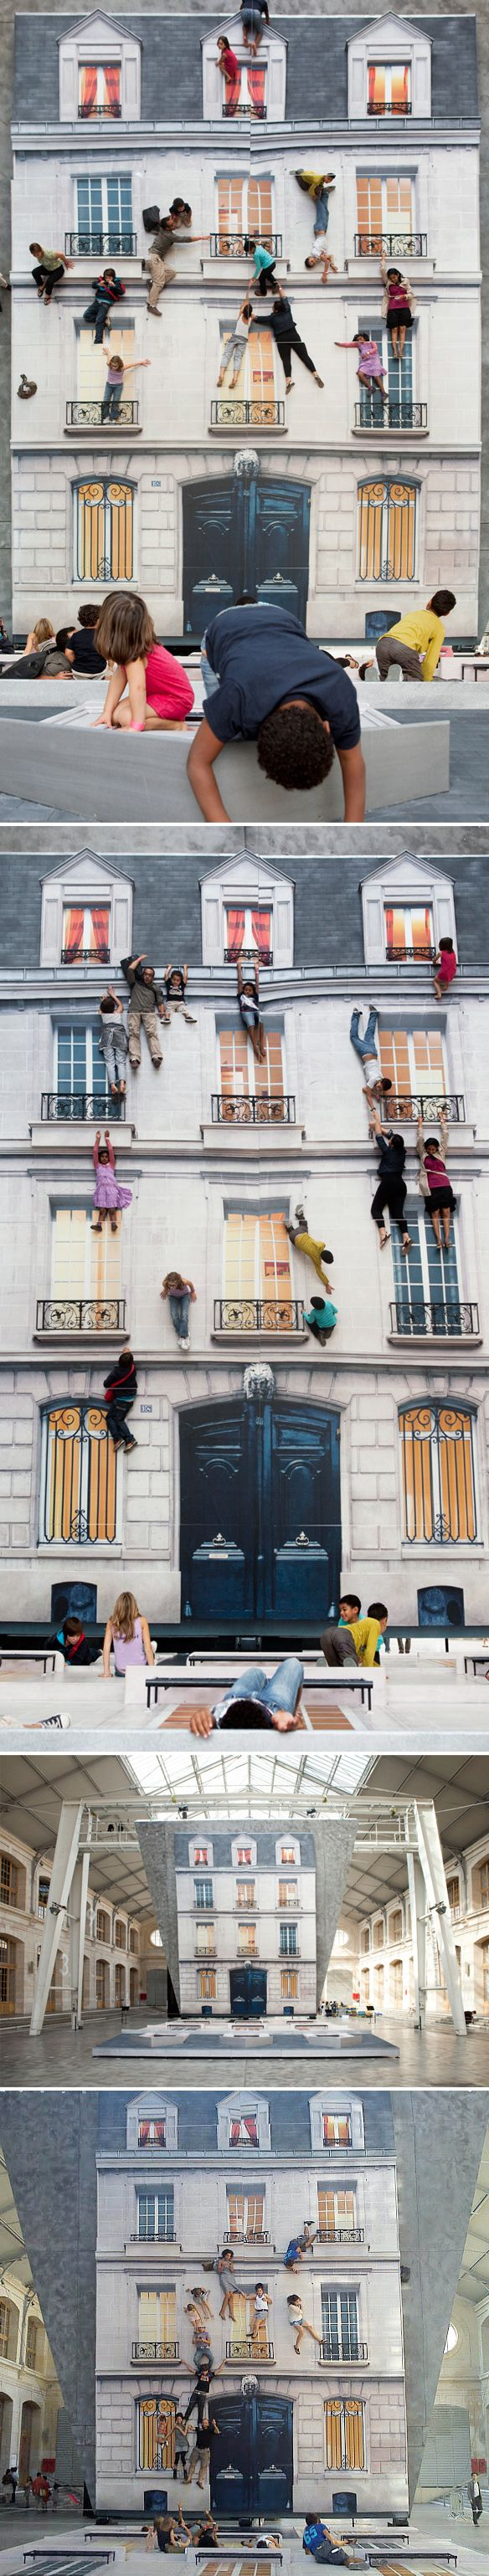 Leandro Erlich is an amazing installation artist from Argentina. This work is titled Bâtiment.